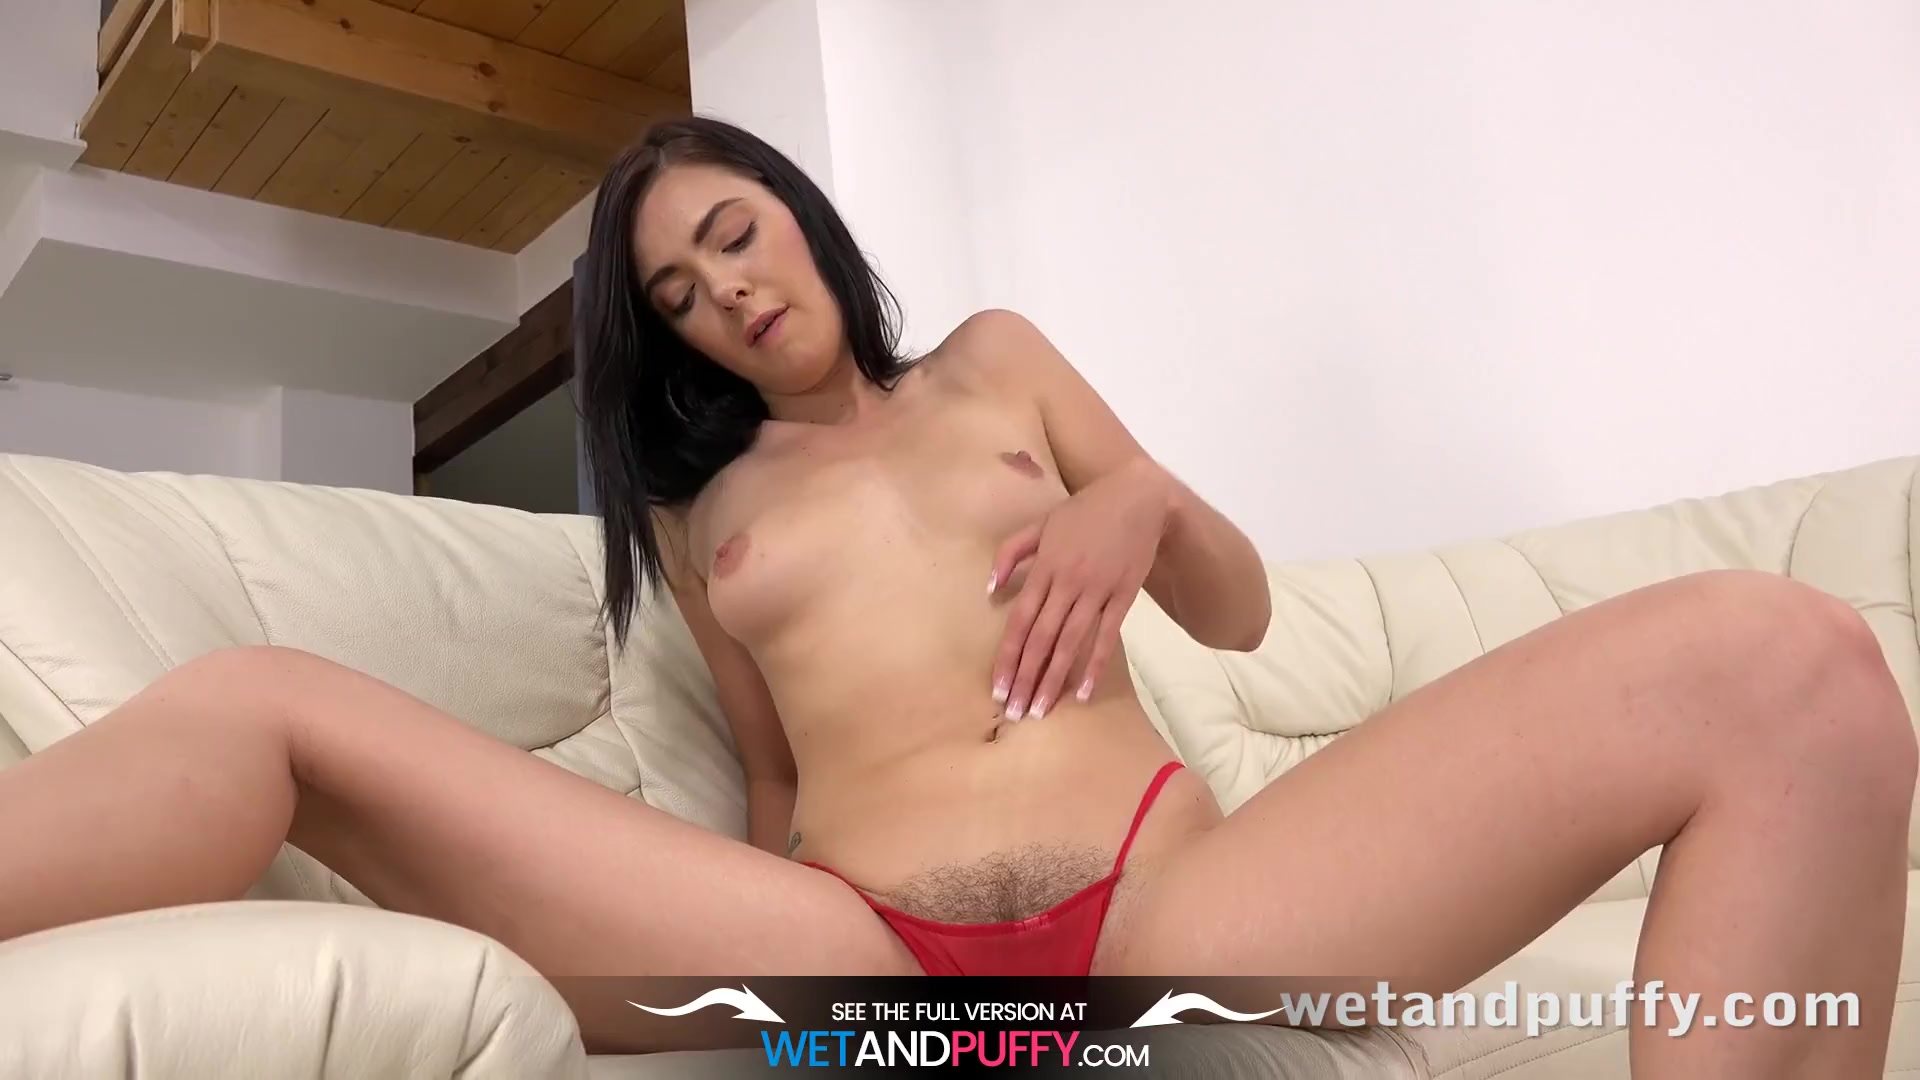 Preview 5 of Wetandpuffy - Marley Brinx Orgasms While Playing With Sex Toys